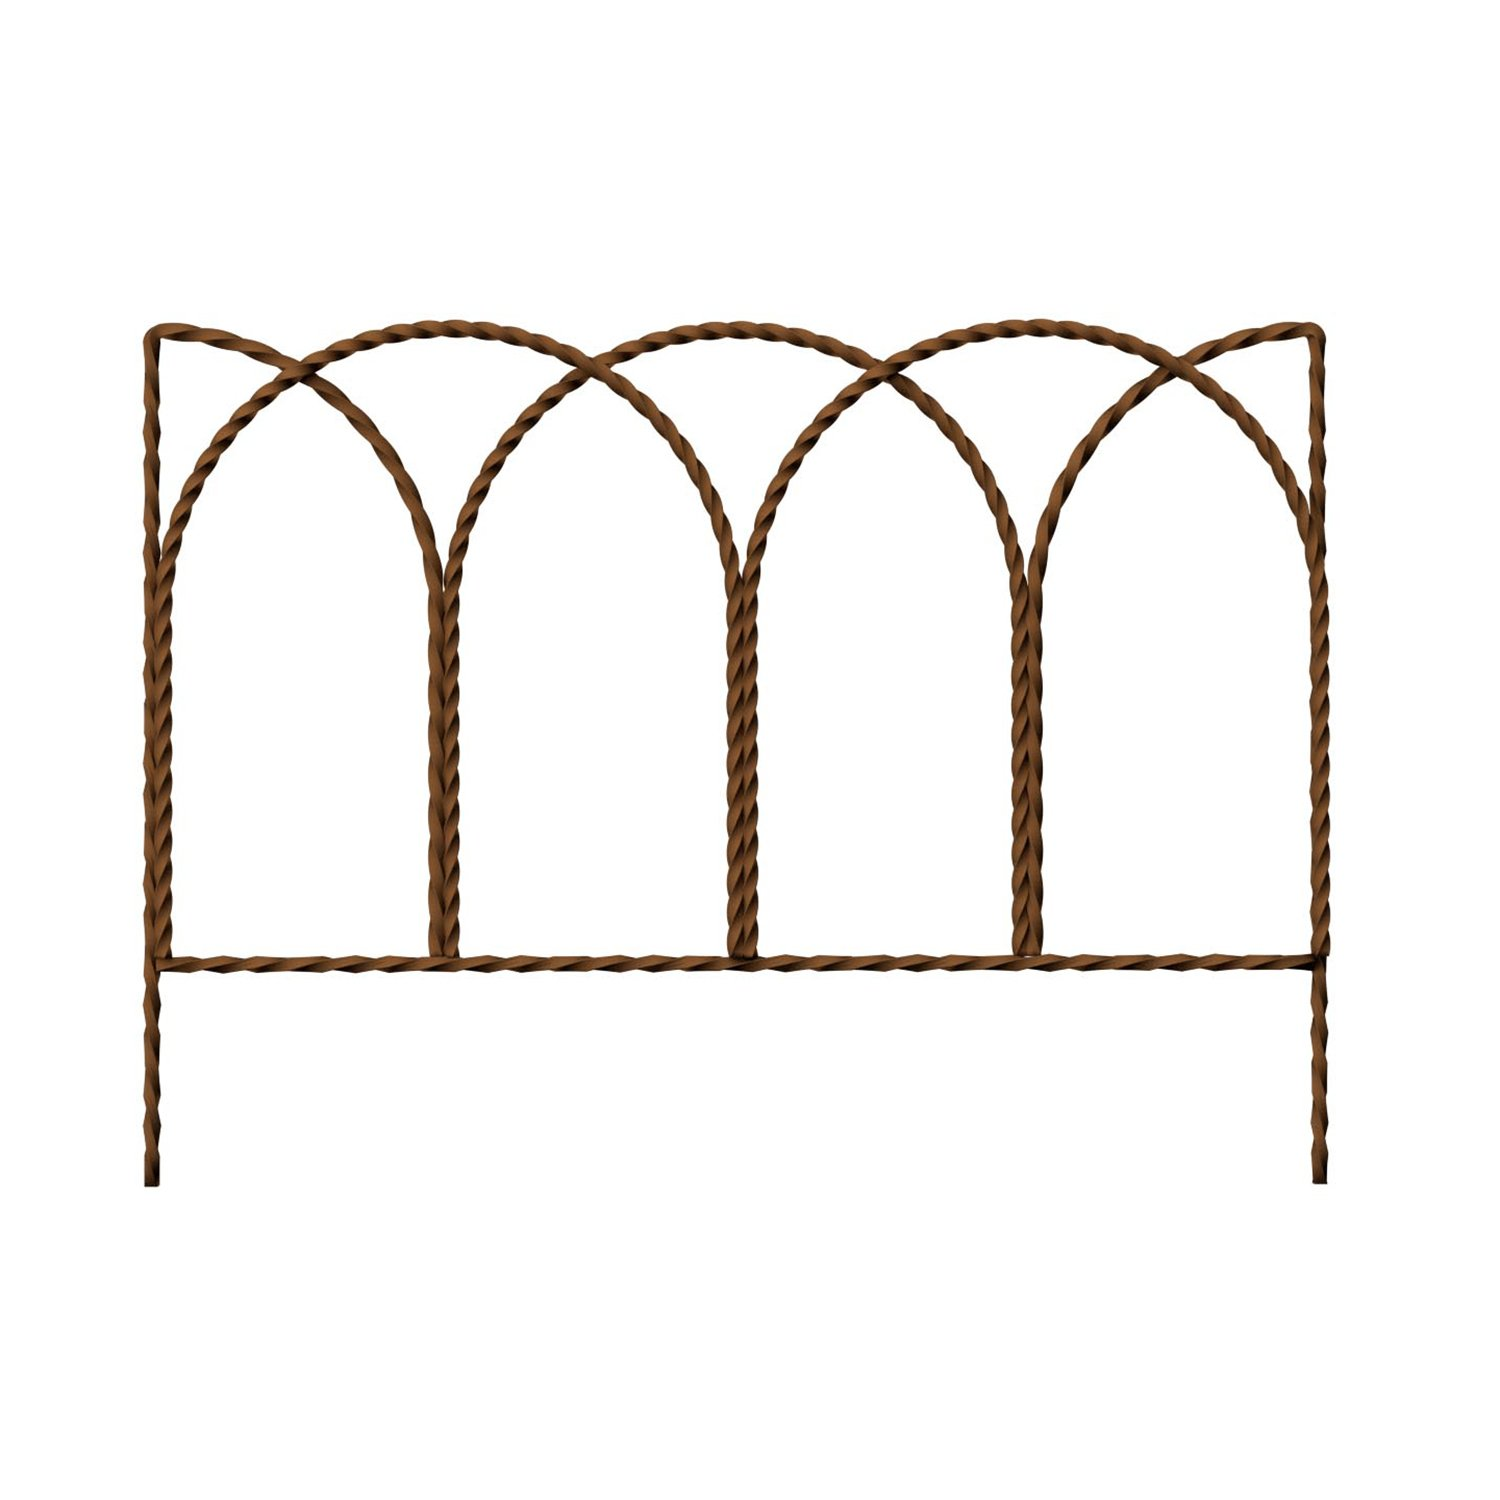 PANACEA PRODUCTS 89362 Rustic Farmhouse Twisted Wire Hoop Border Edge, 14'' x 20''